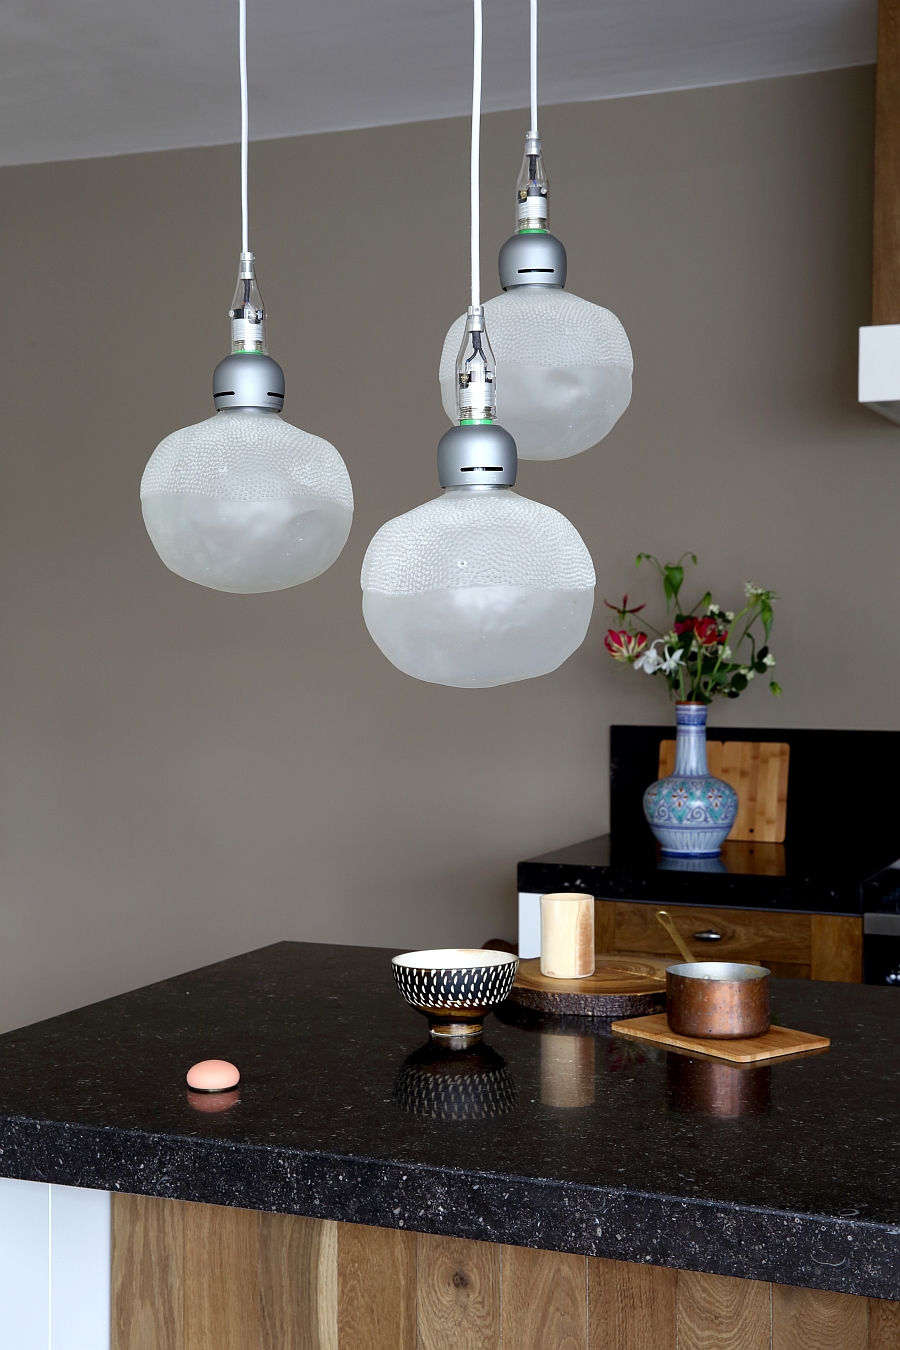 User friendly and durable rubber pendant lights from Nacho Carbonell for Booo